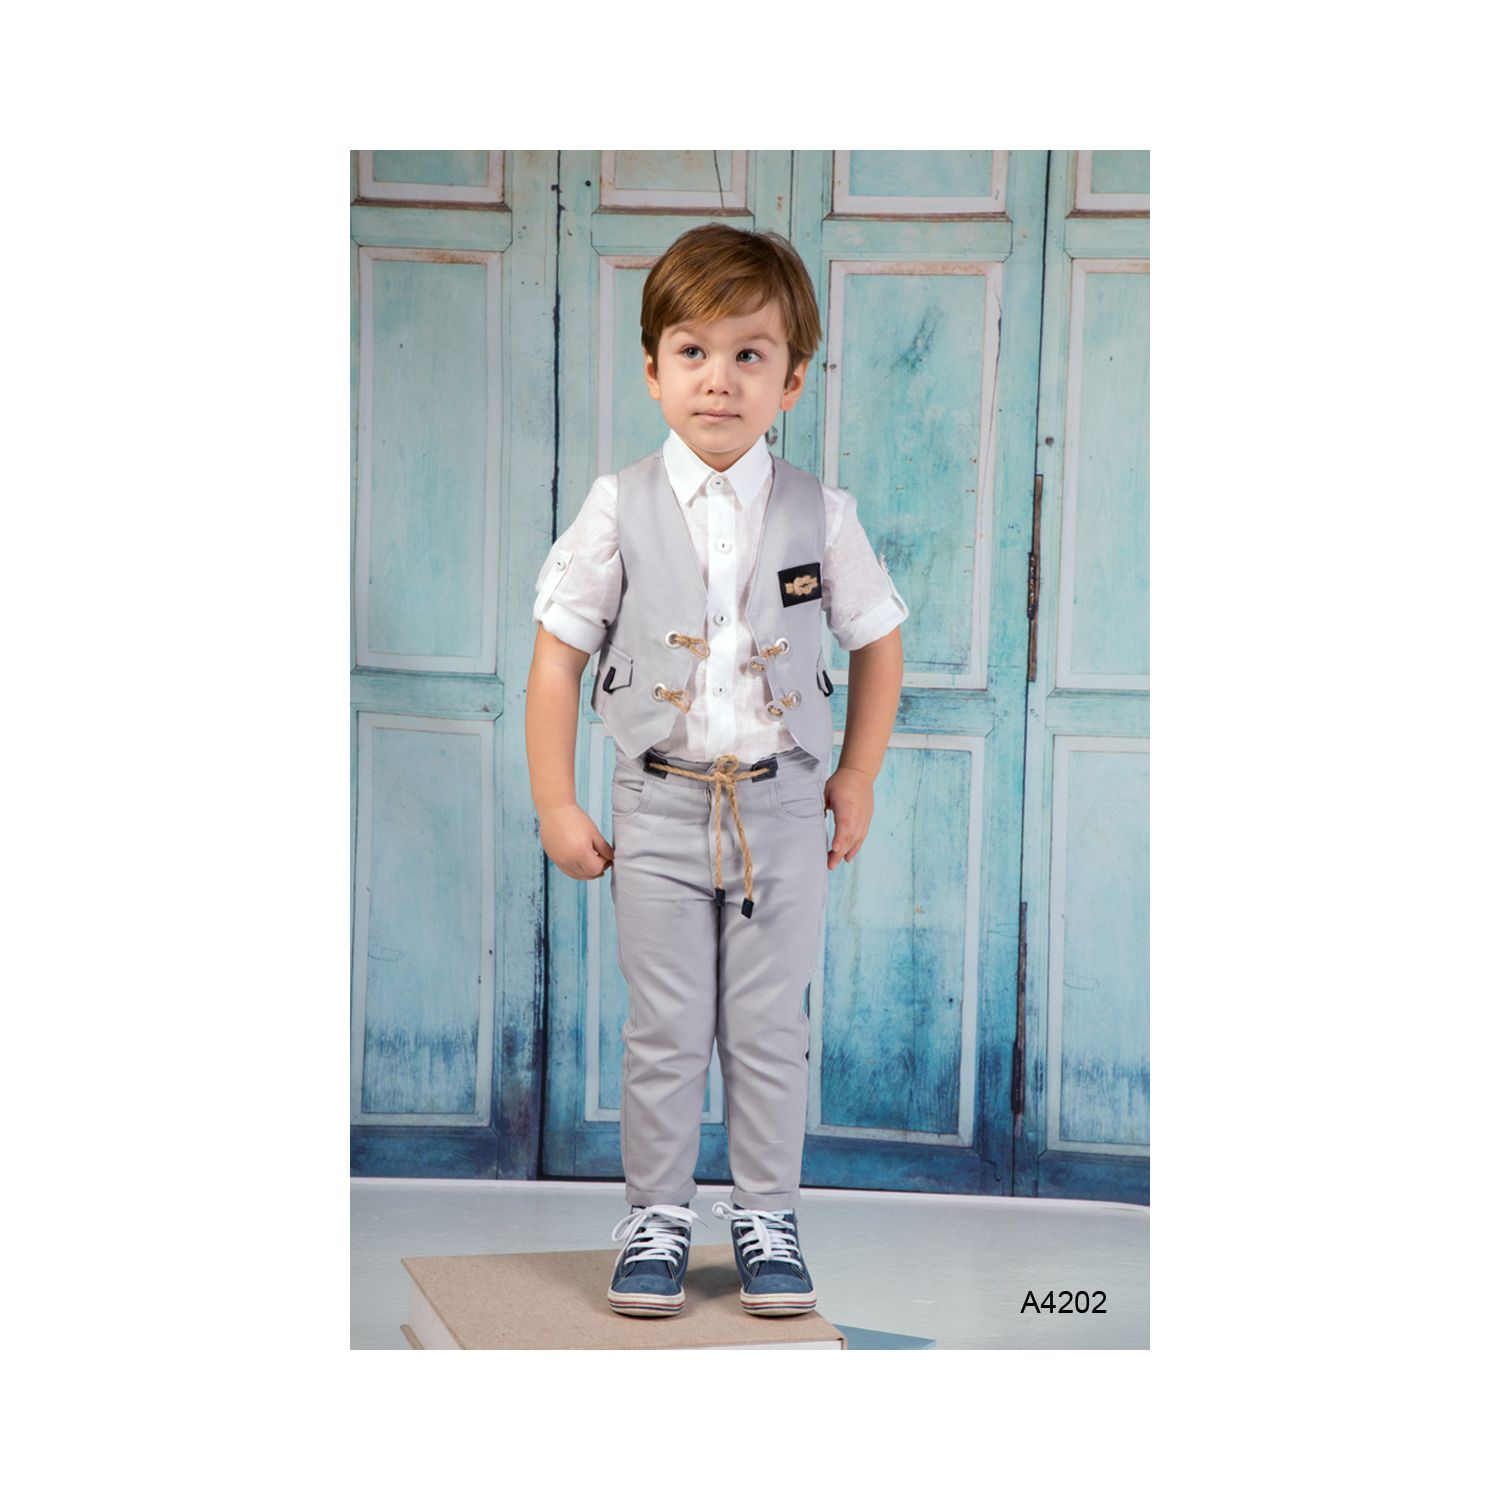 Baptismal clothes in modern style A4202